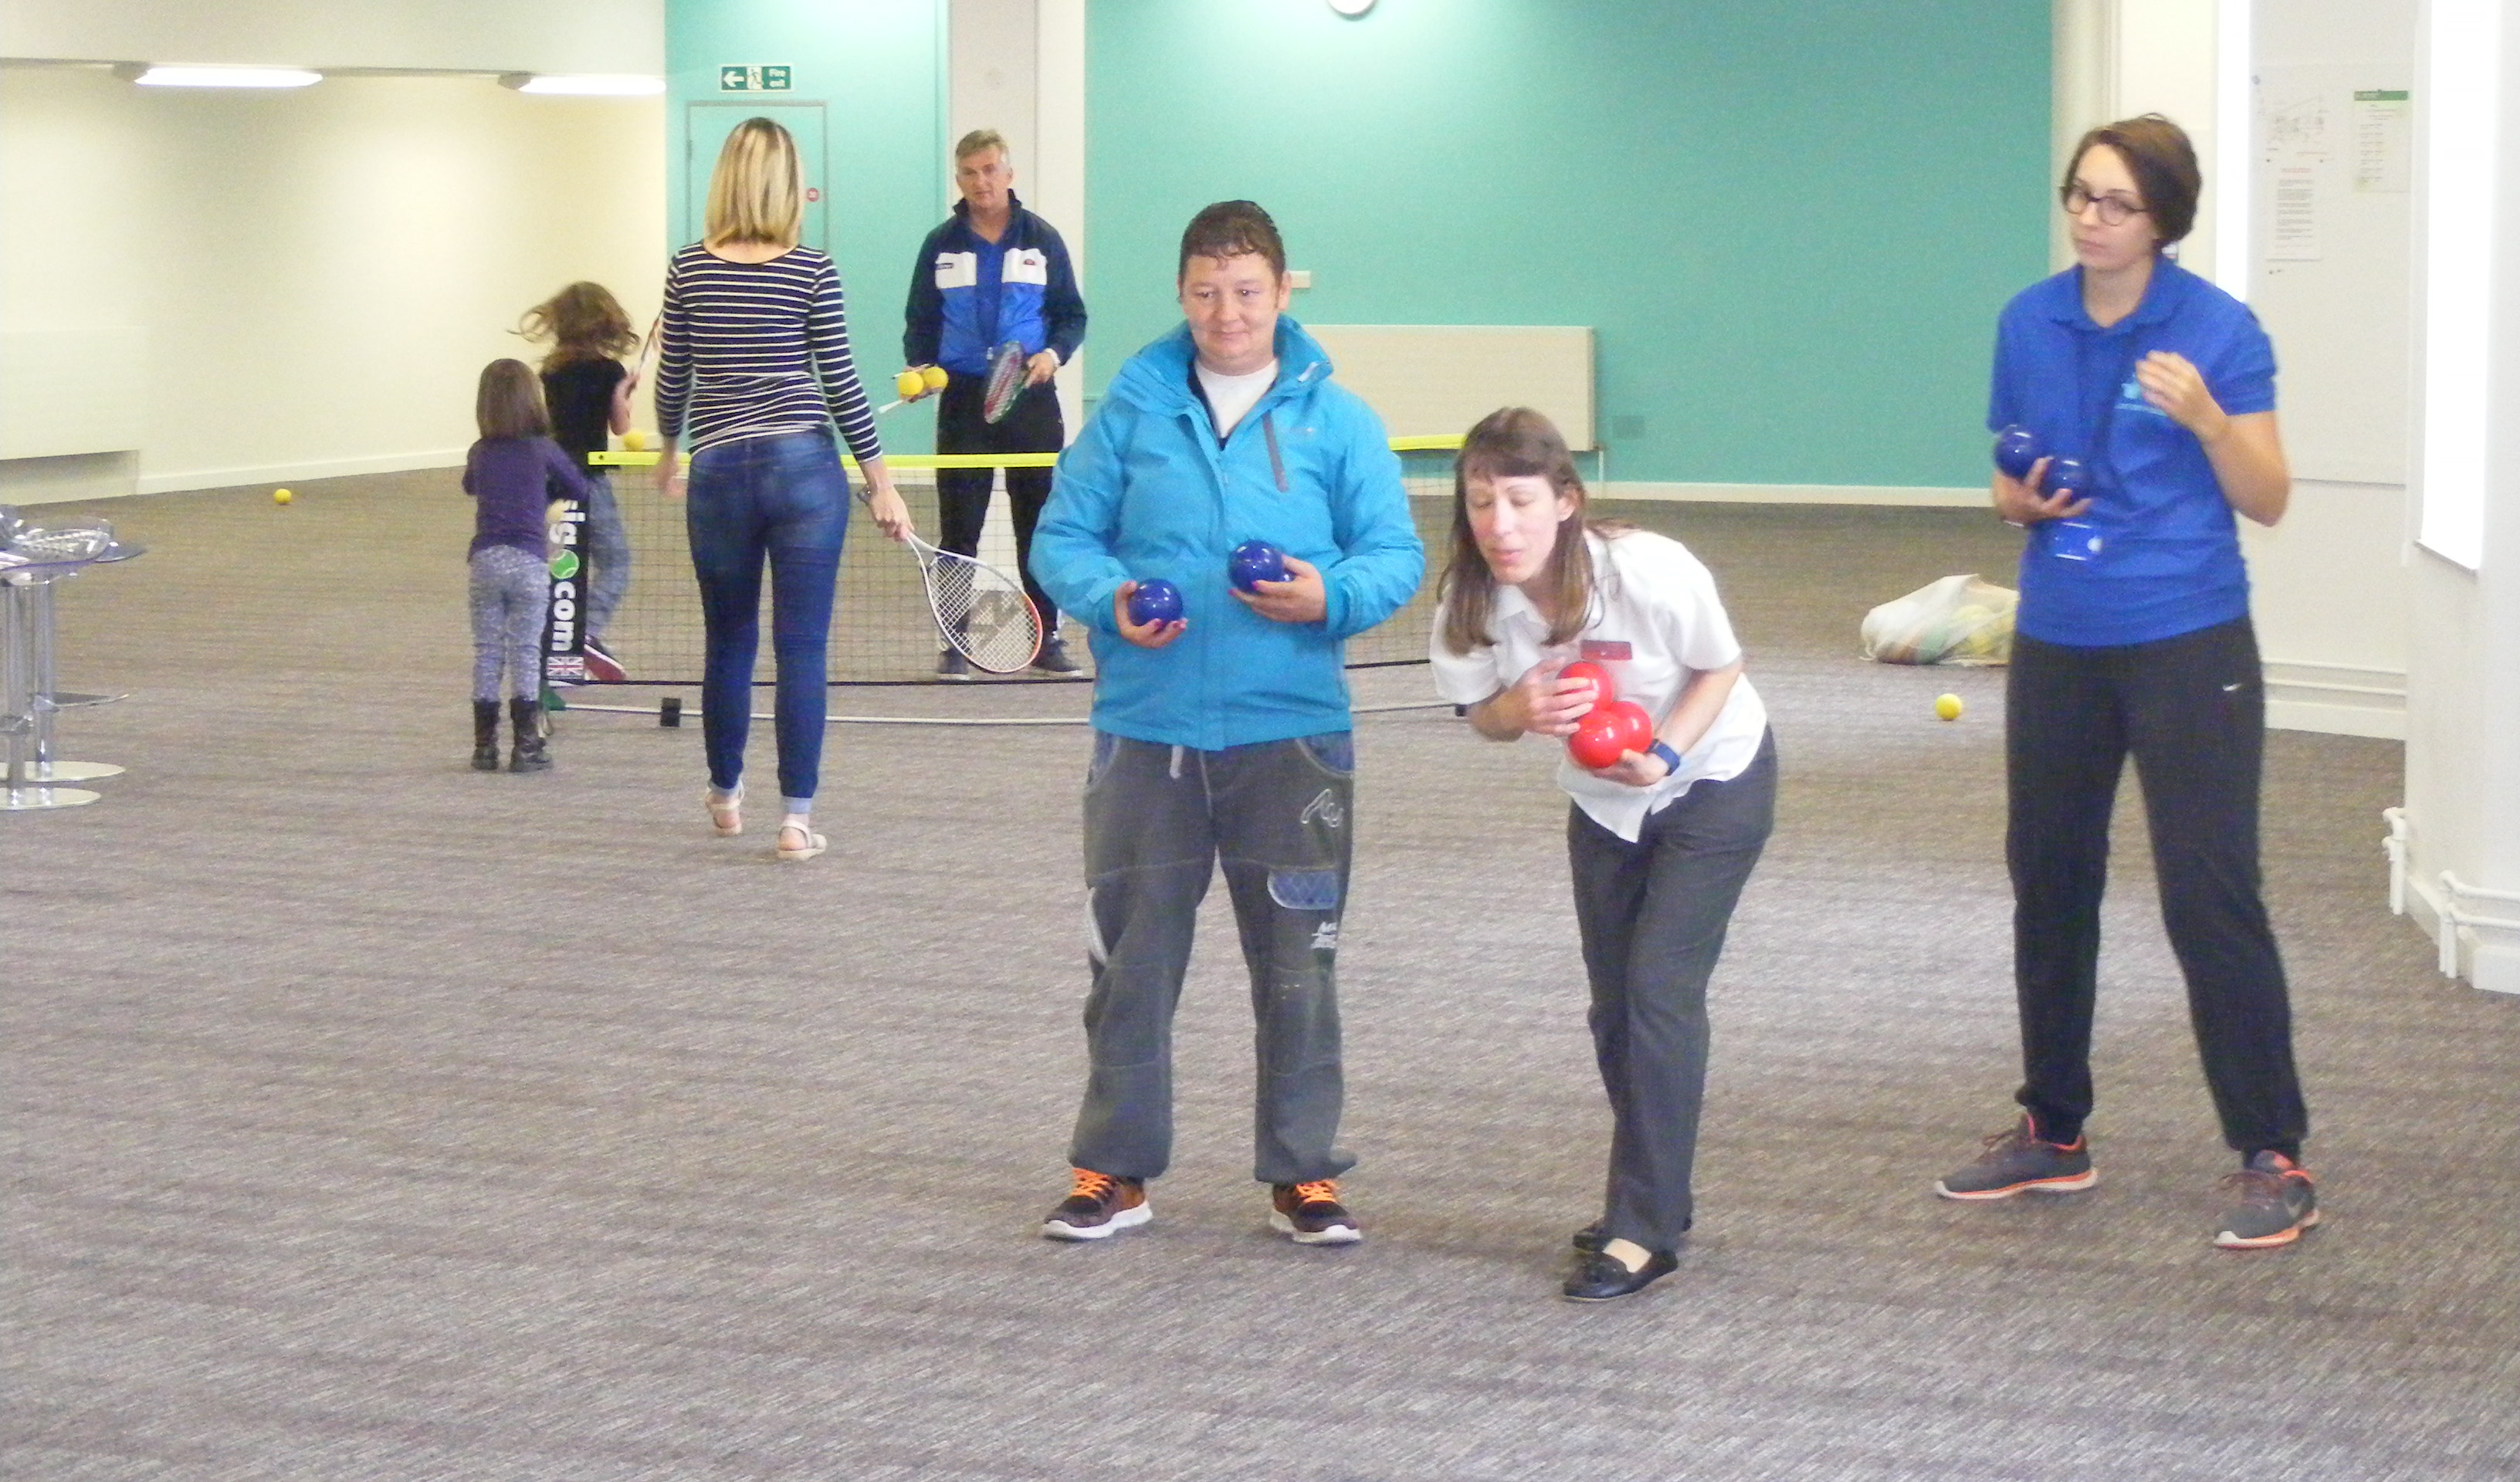 Sports Sessions For All Abilities In Mansfield